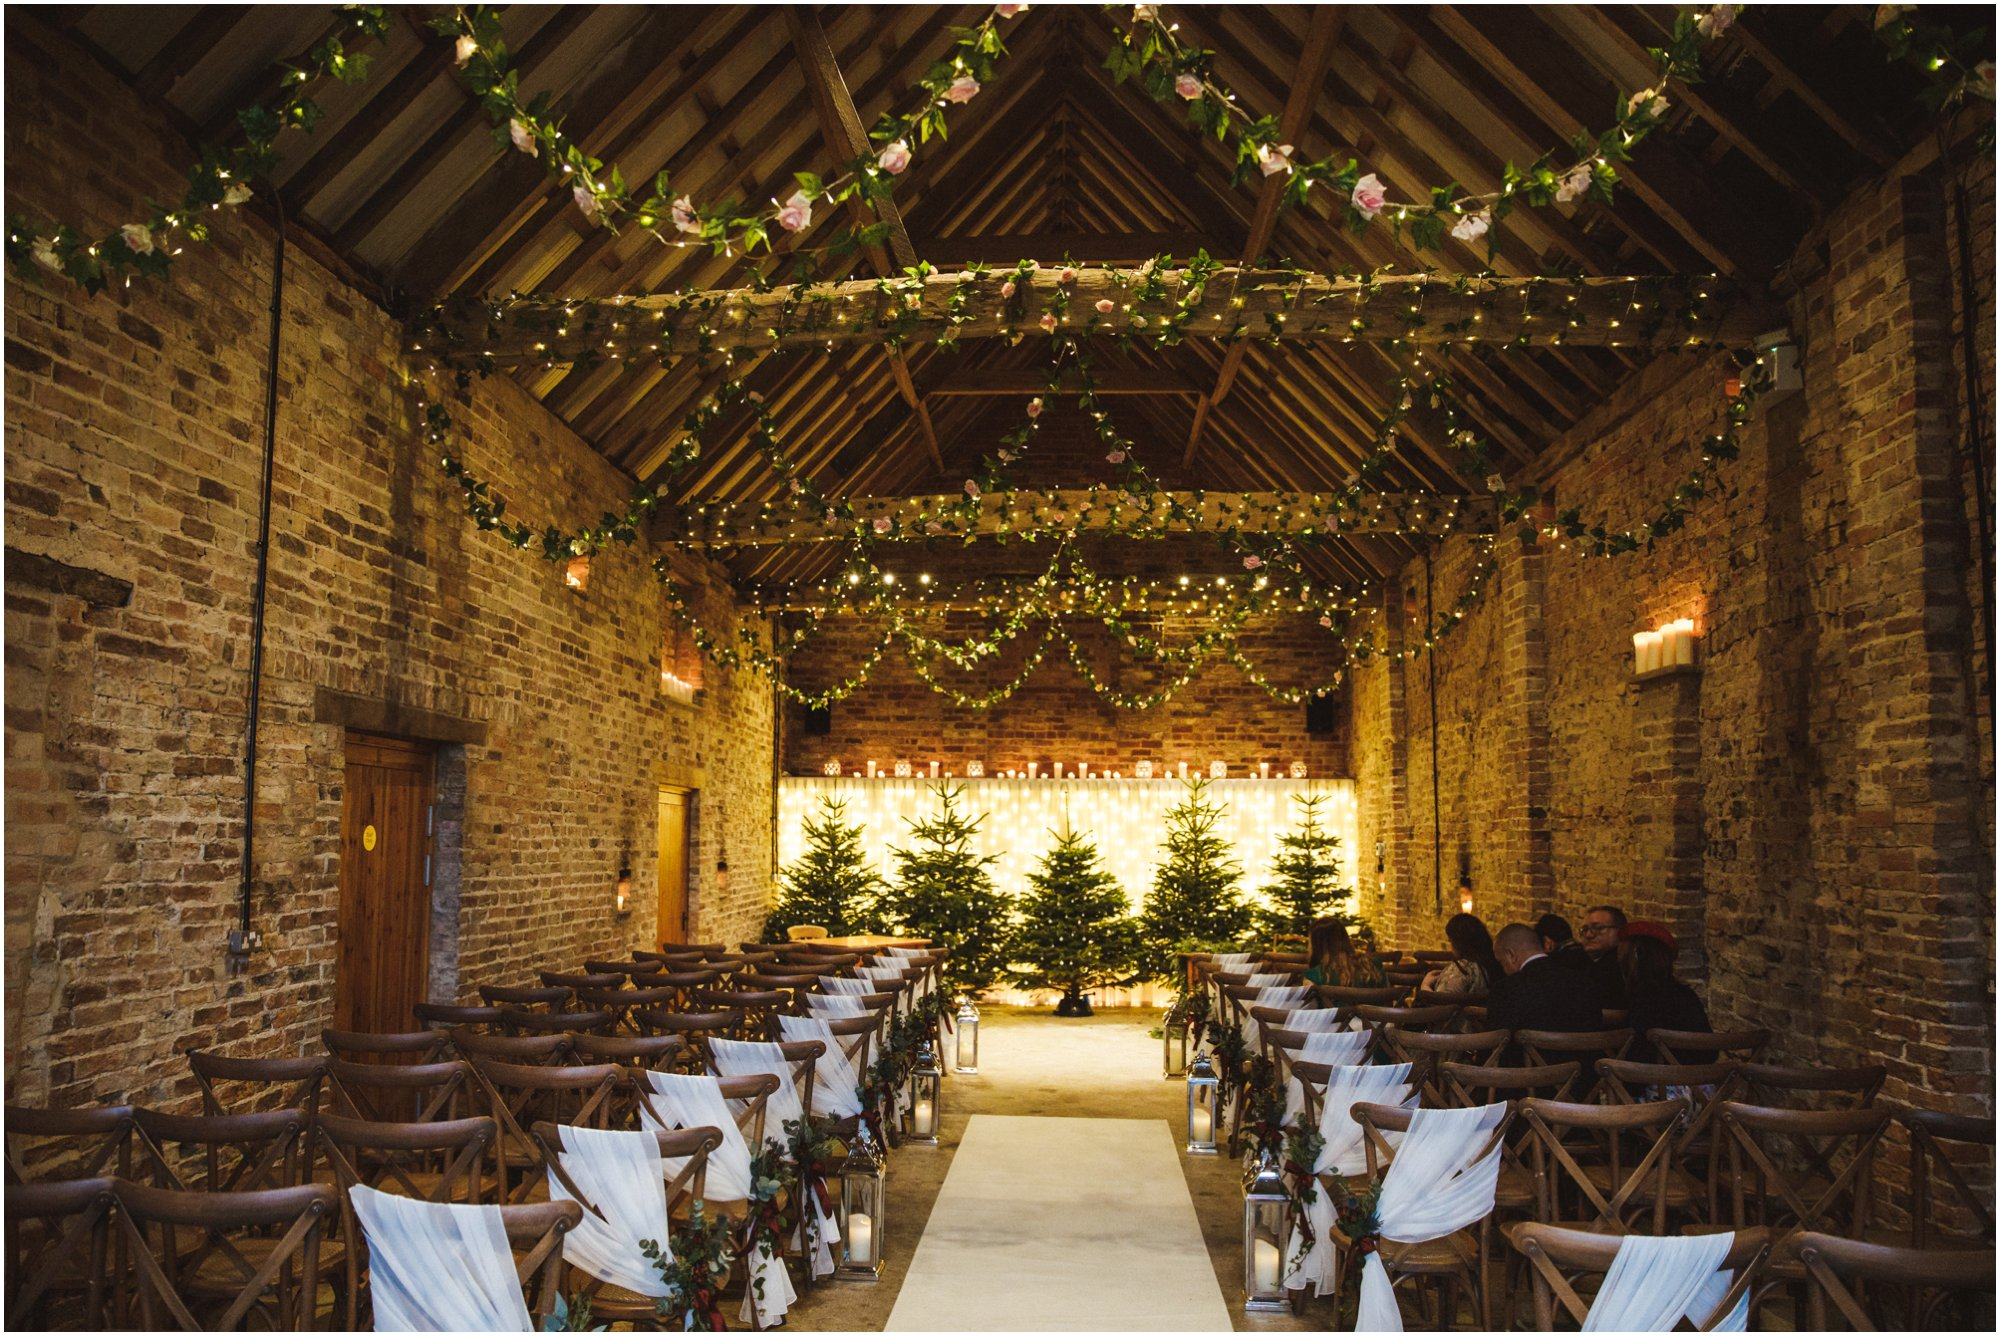 Barmbyfields Barn Wedding York_0019.jpg